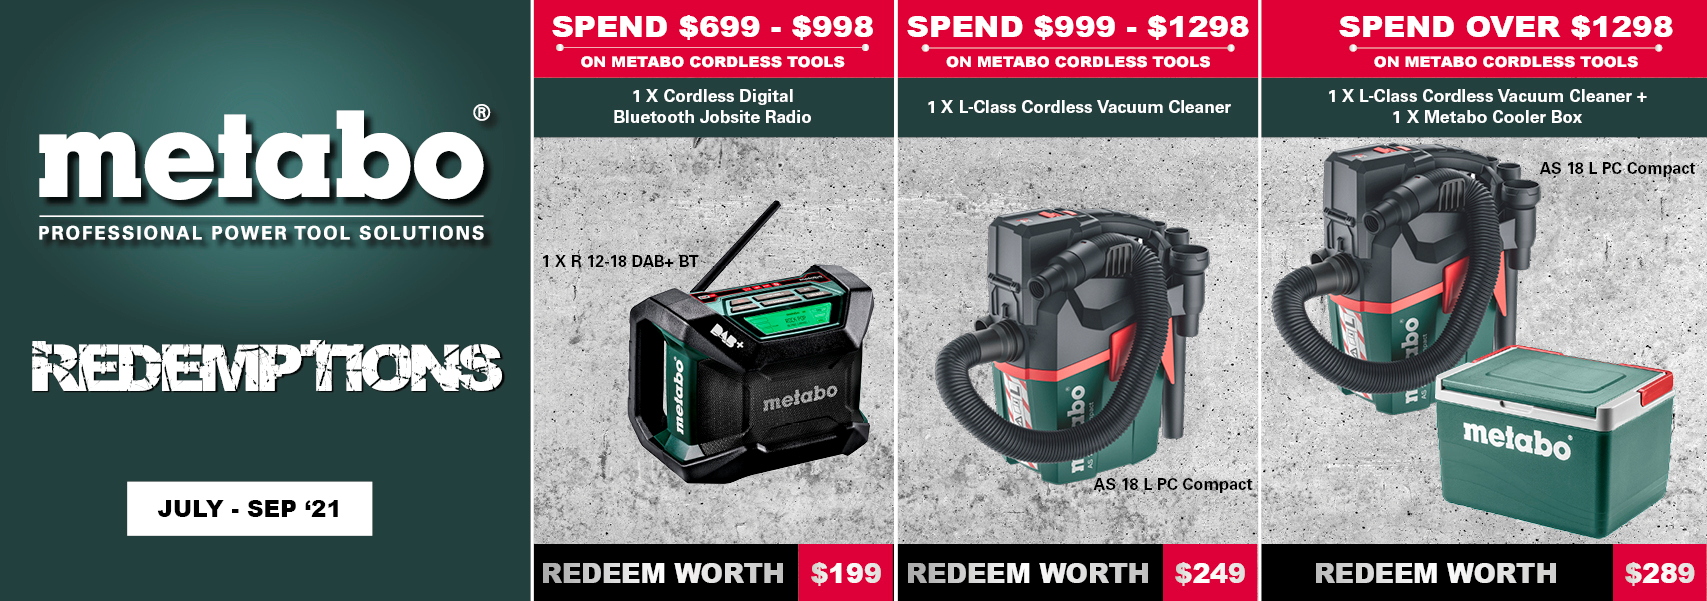 Metabo Redemptions